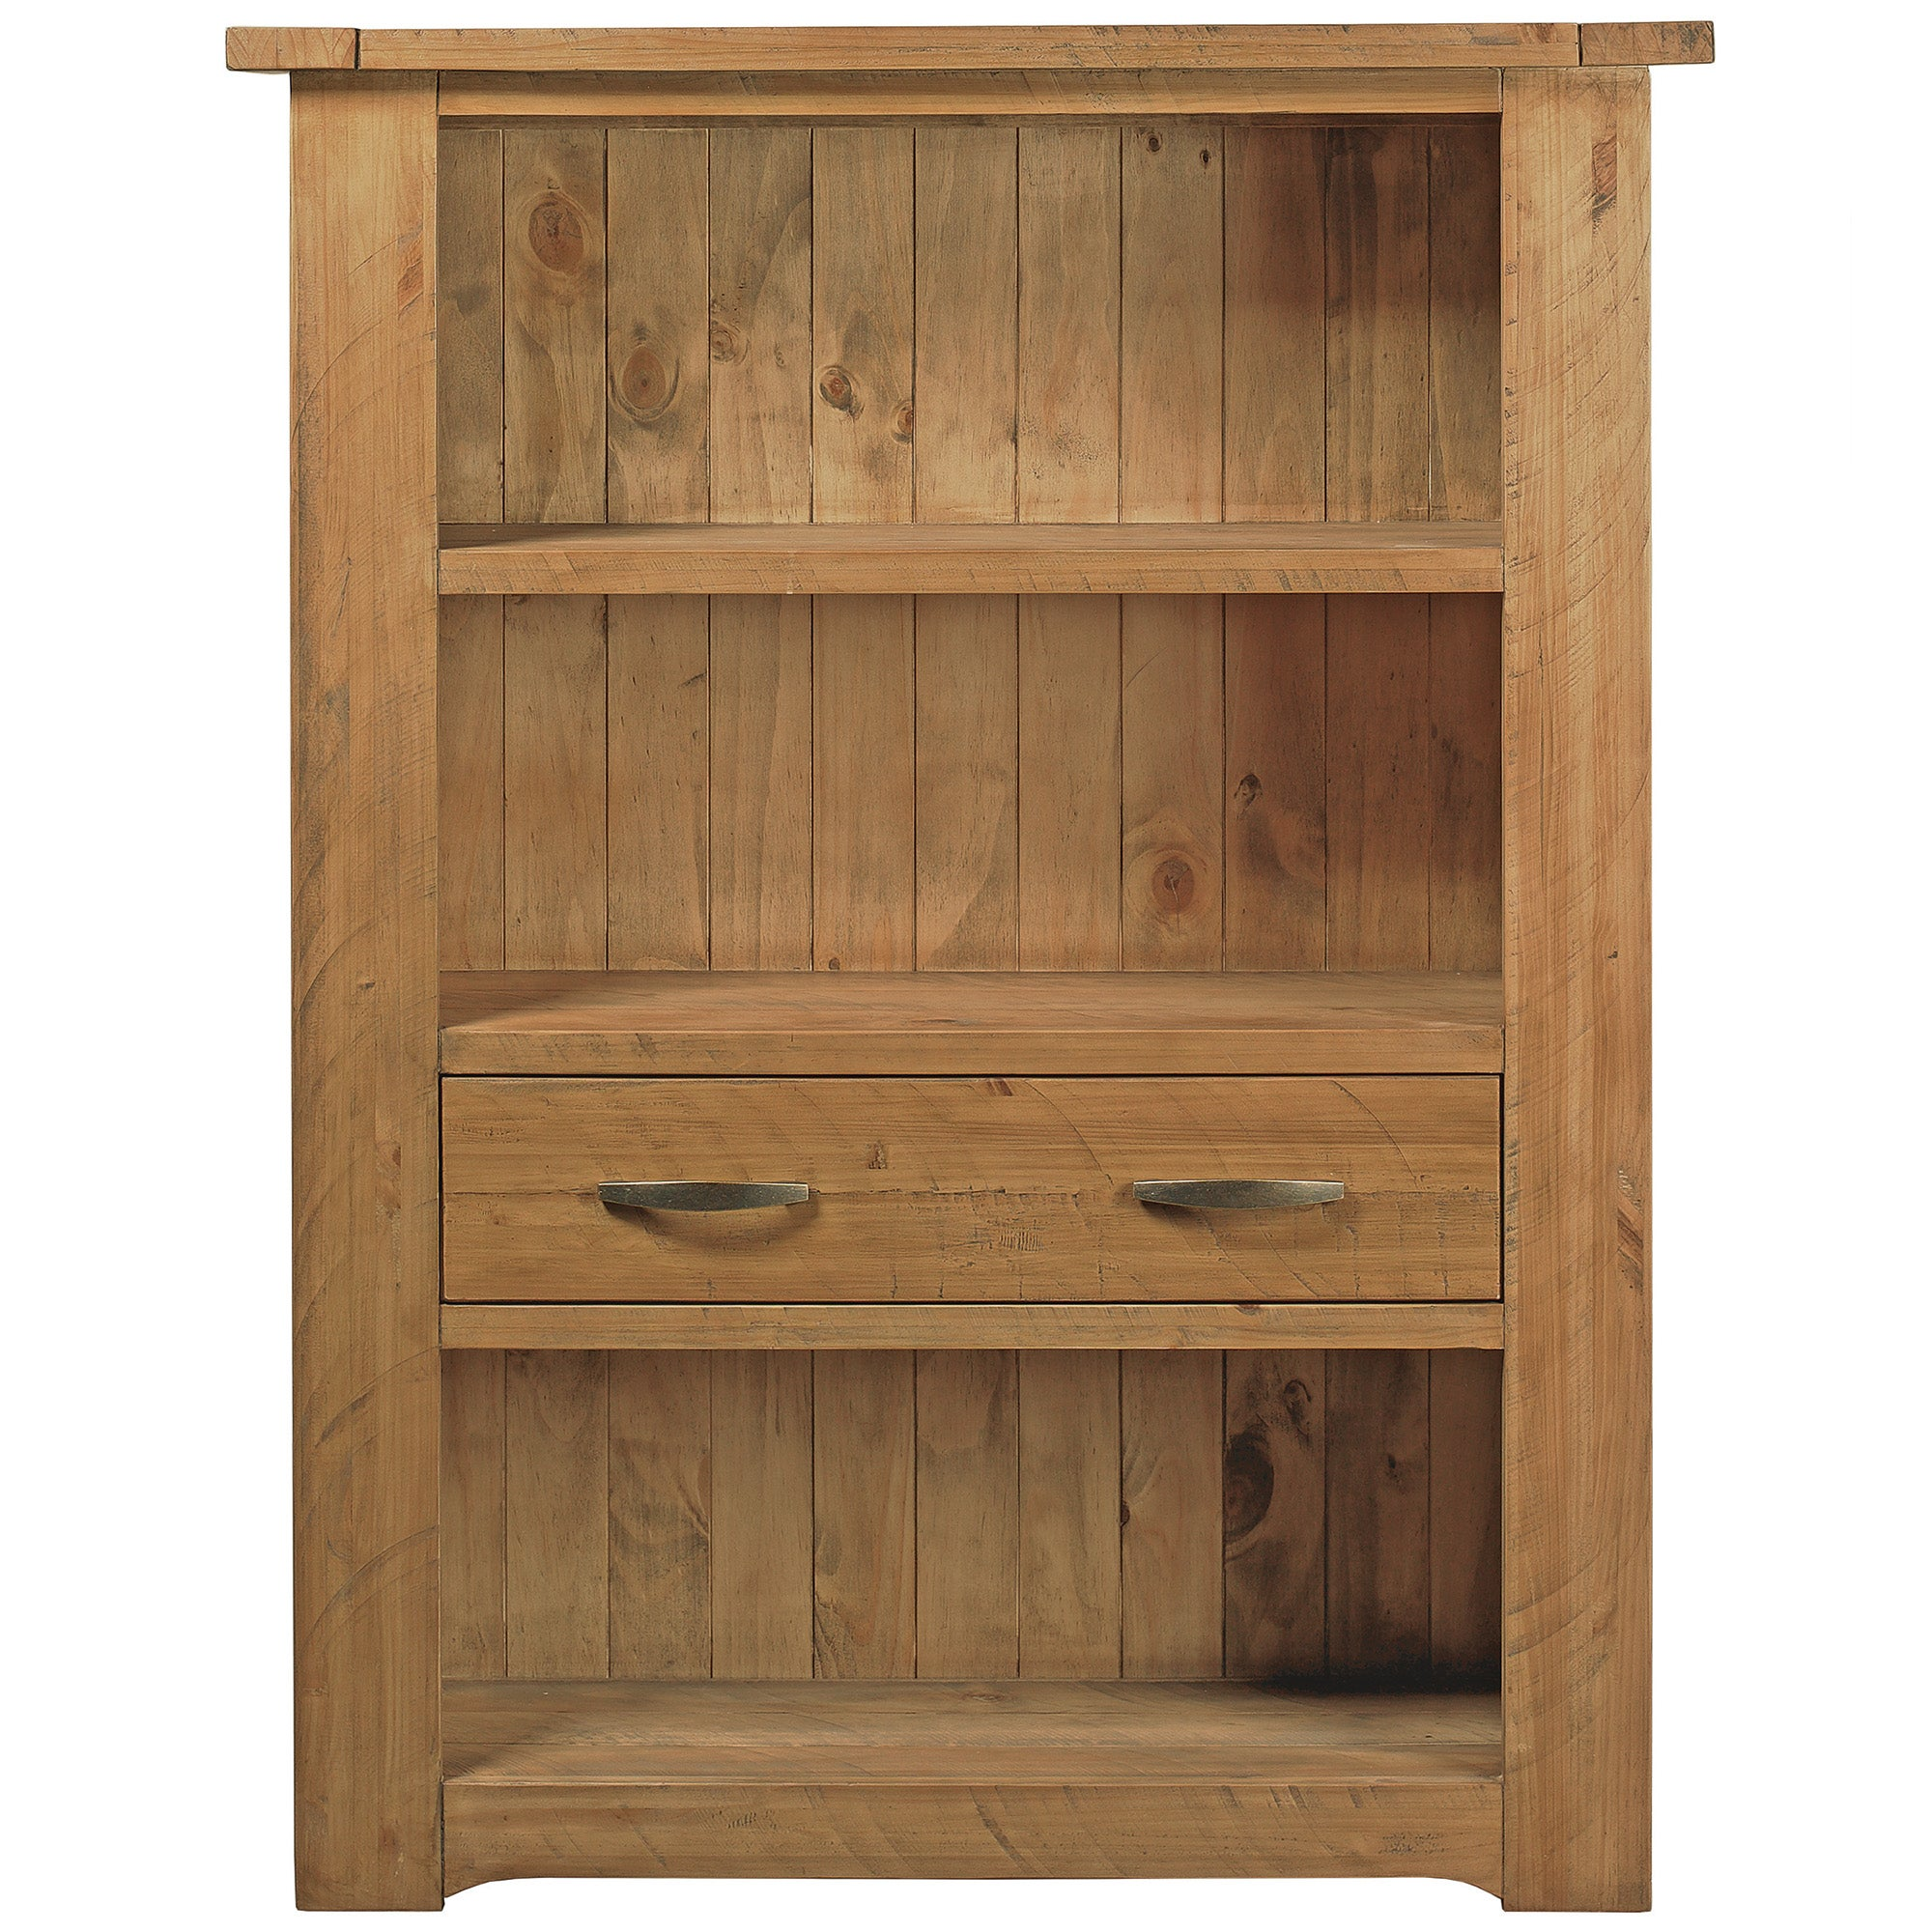 Loxley Pine Large Bookcase